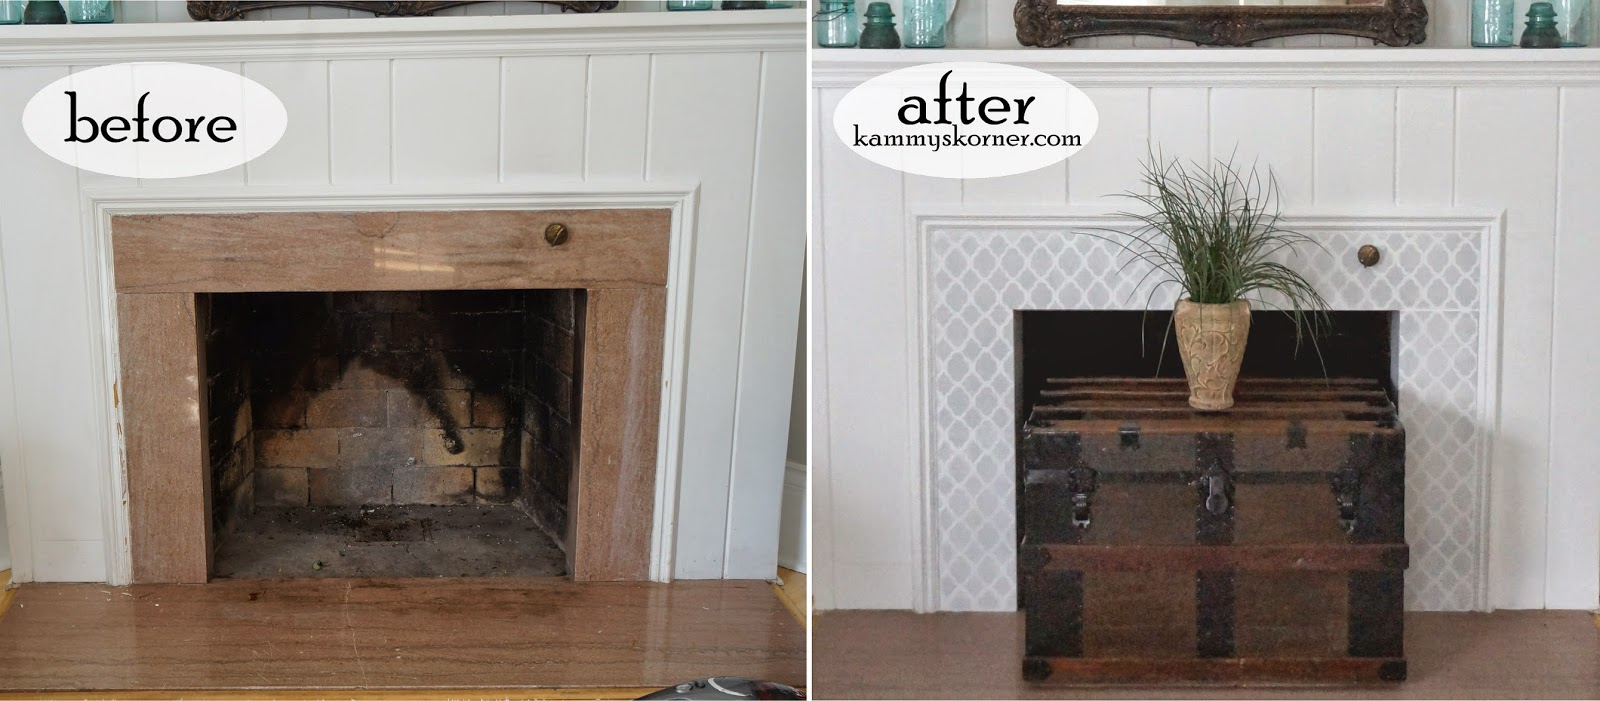 Before And After Of A Diy Painted Granite Fireplace Makeover Using The Rabat Craft Stencil